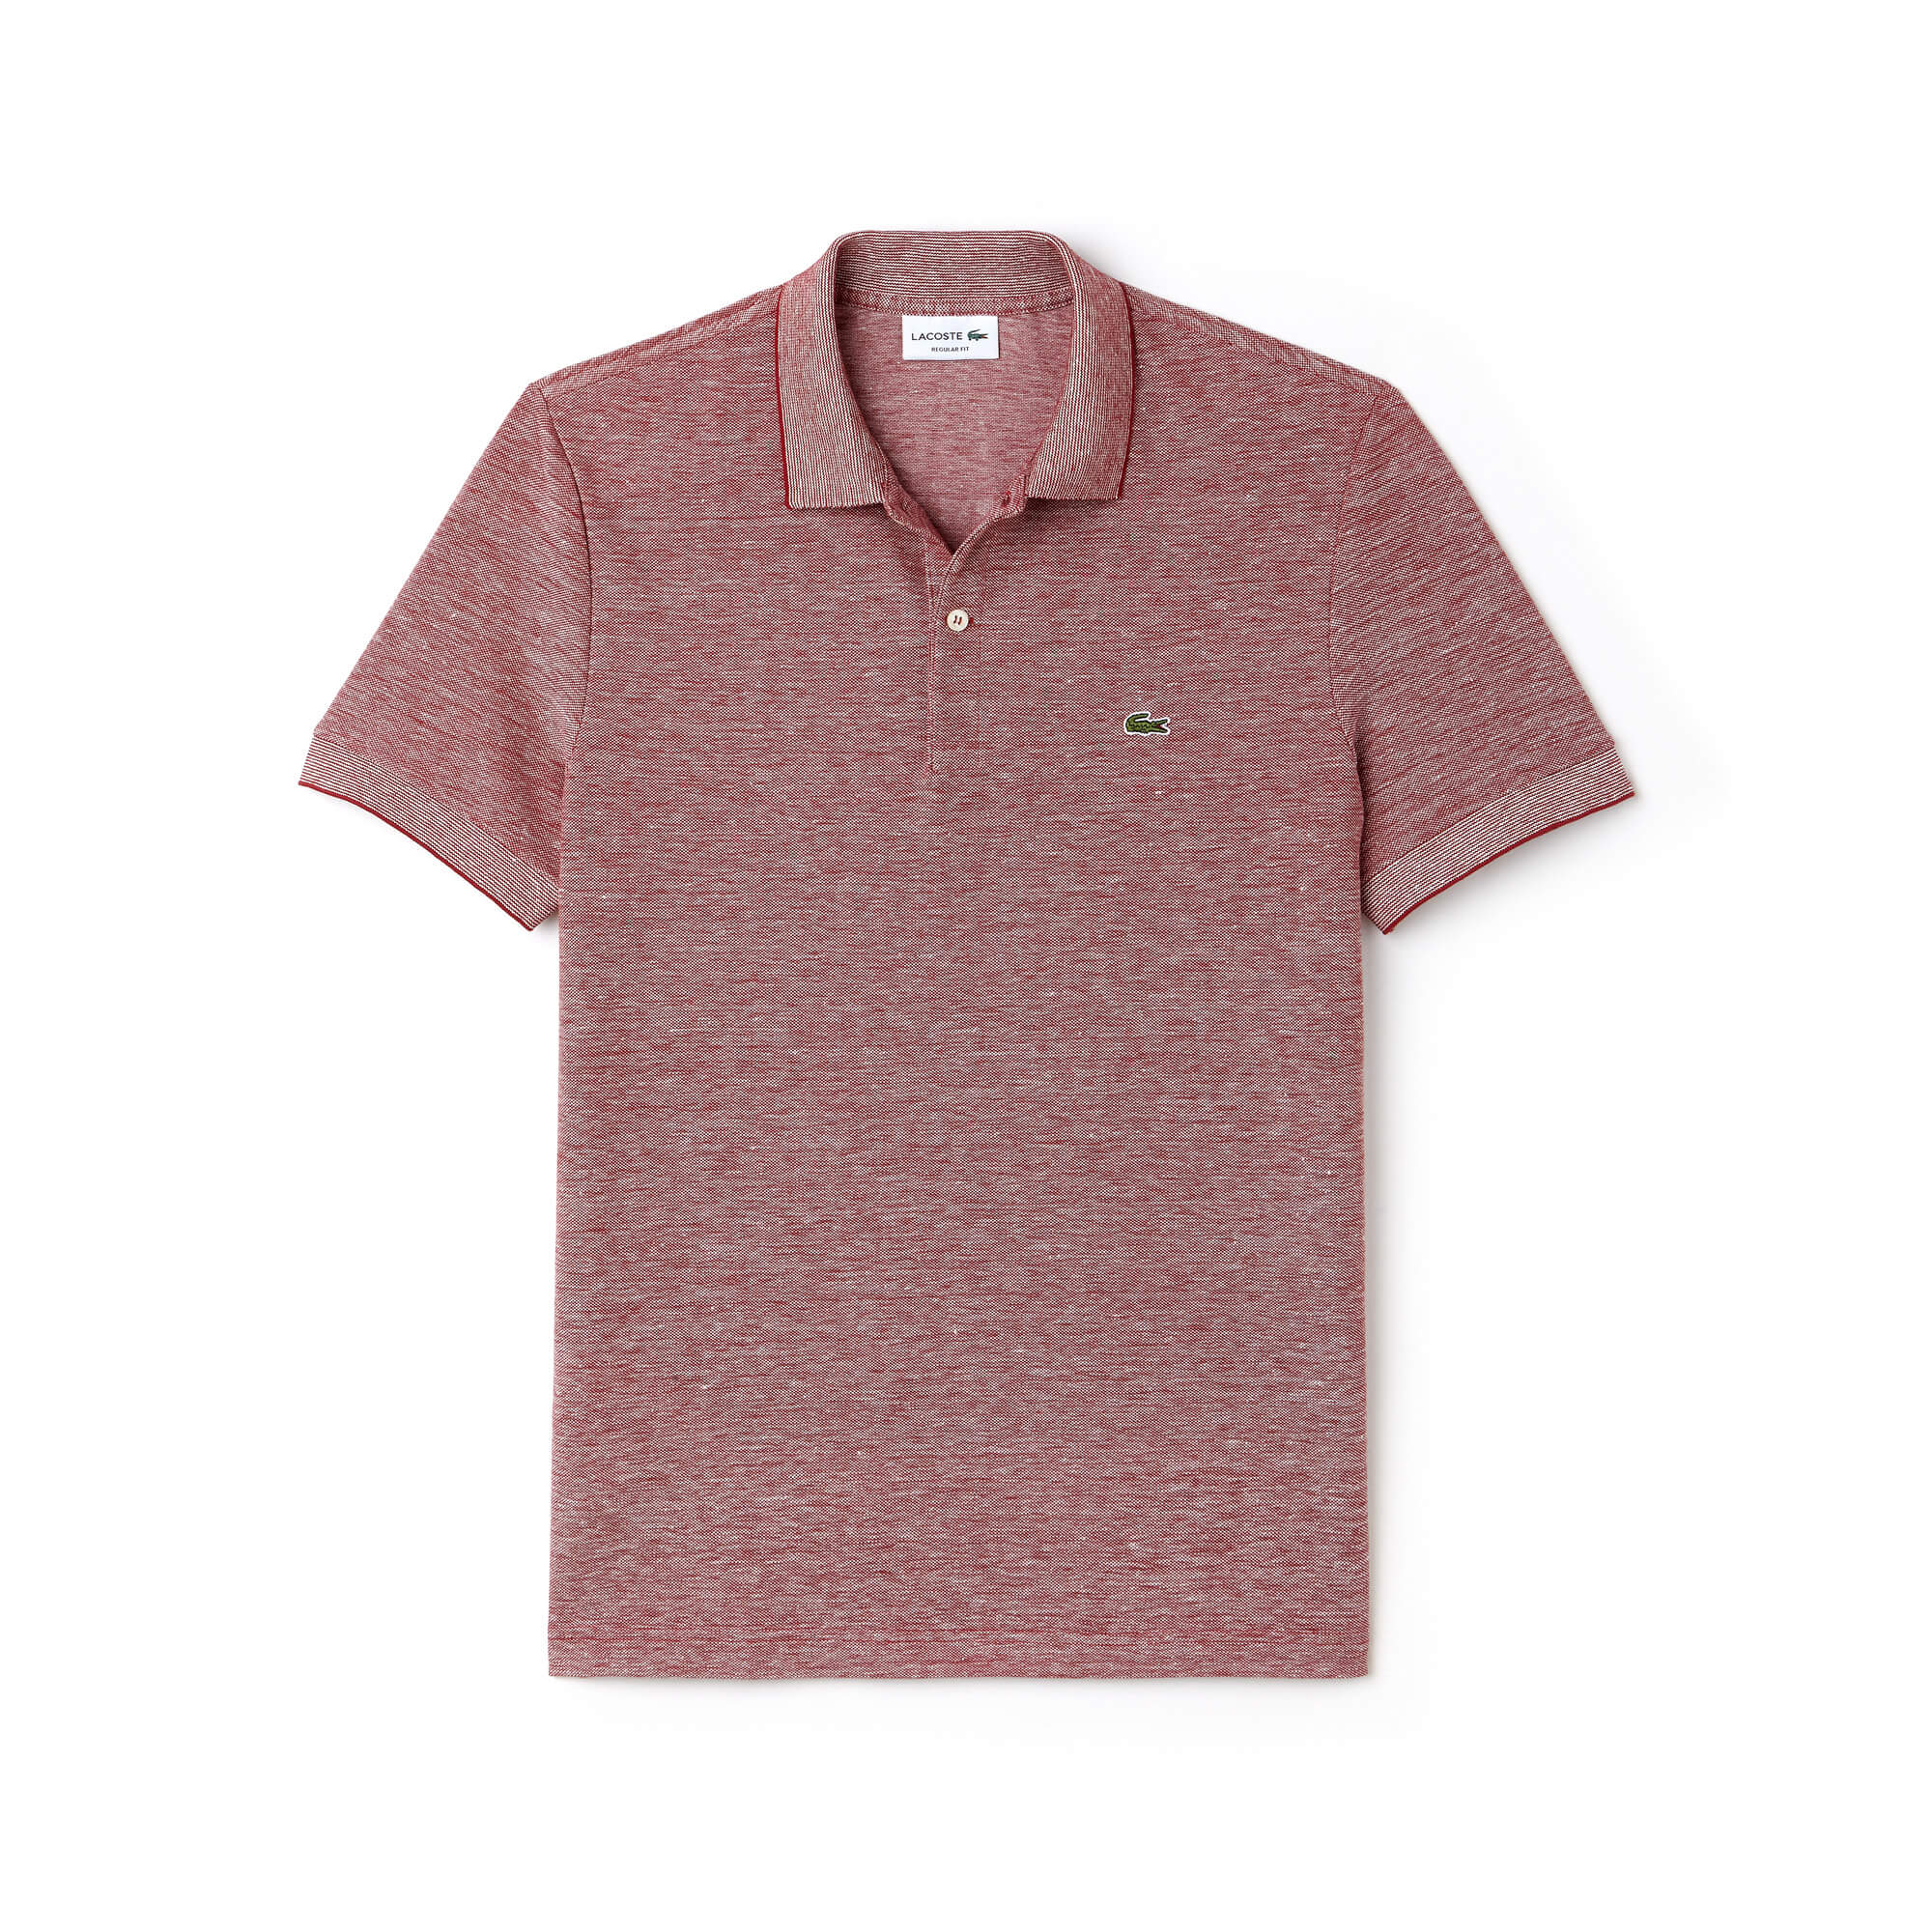 Men's Lacoste Regular Fit Texturized Caviar Piqué Polo